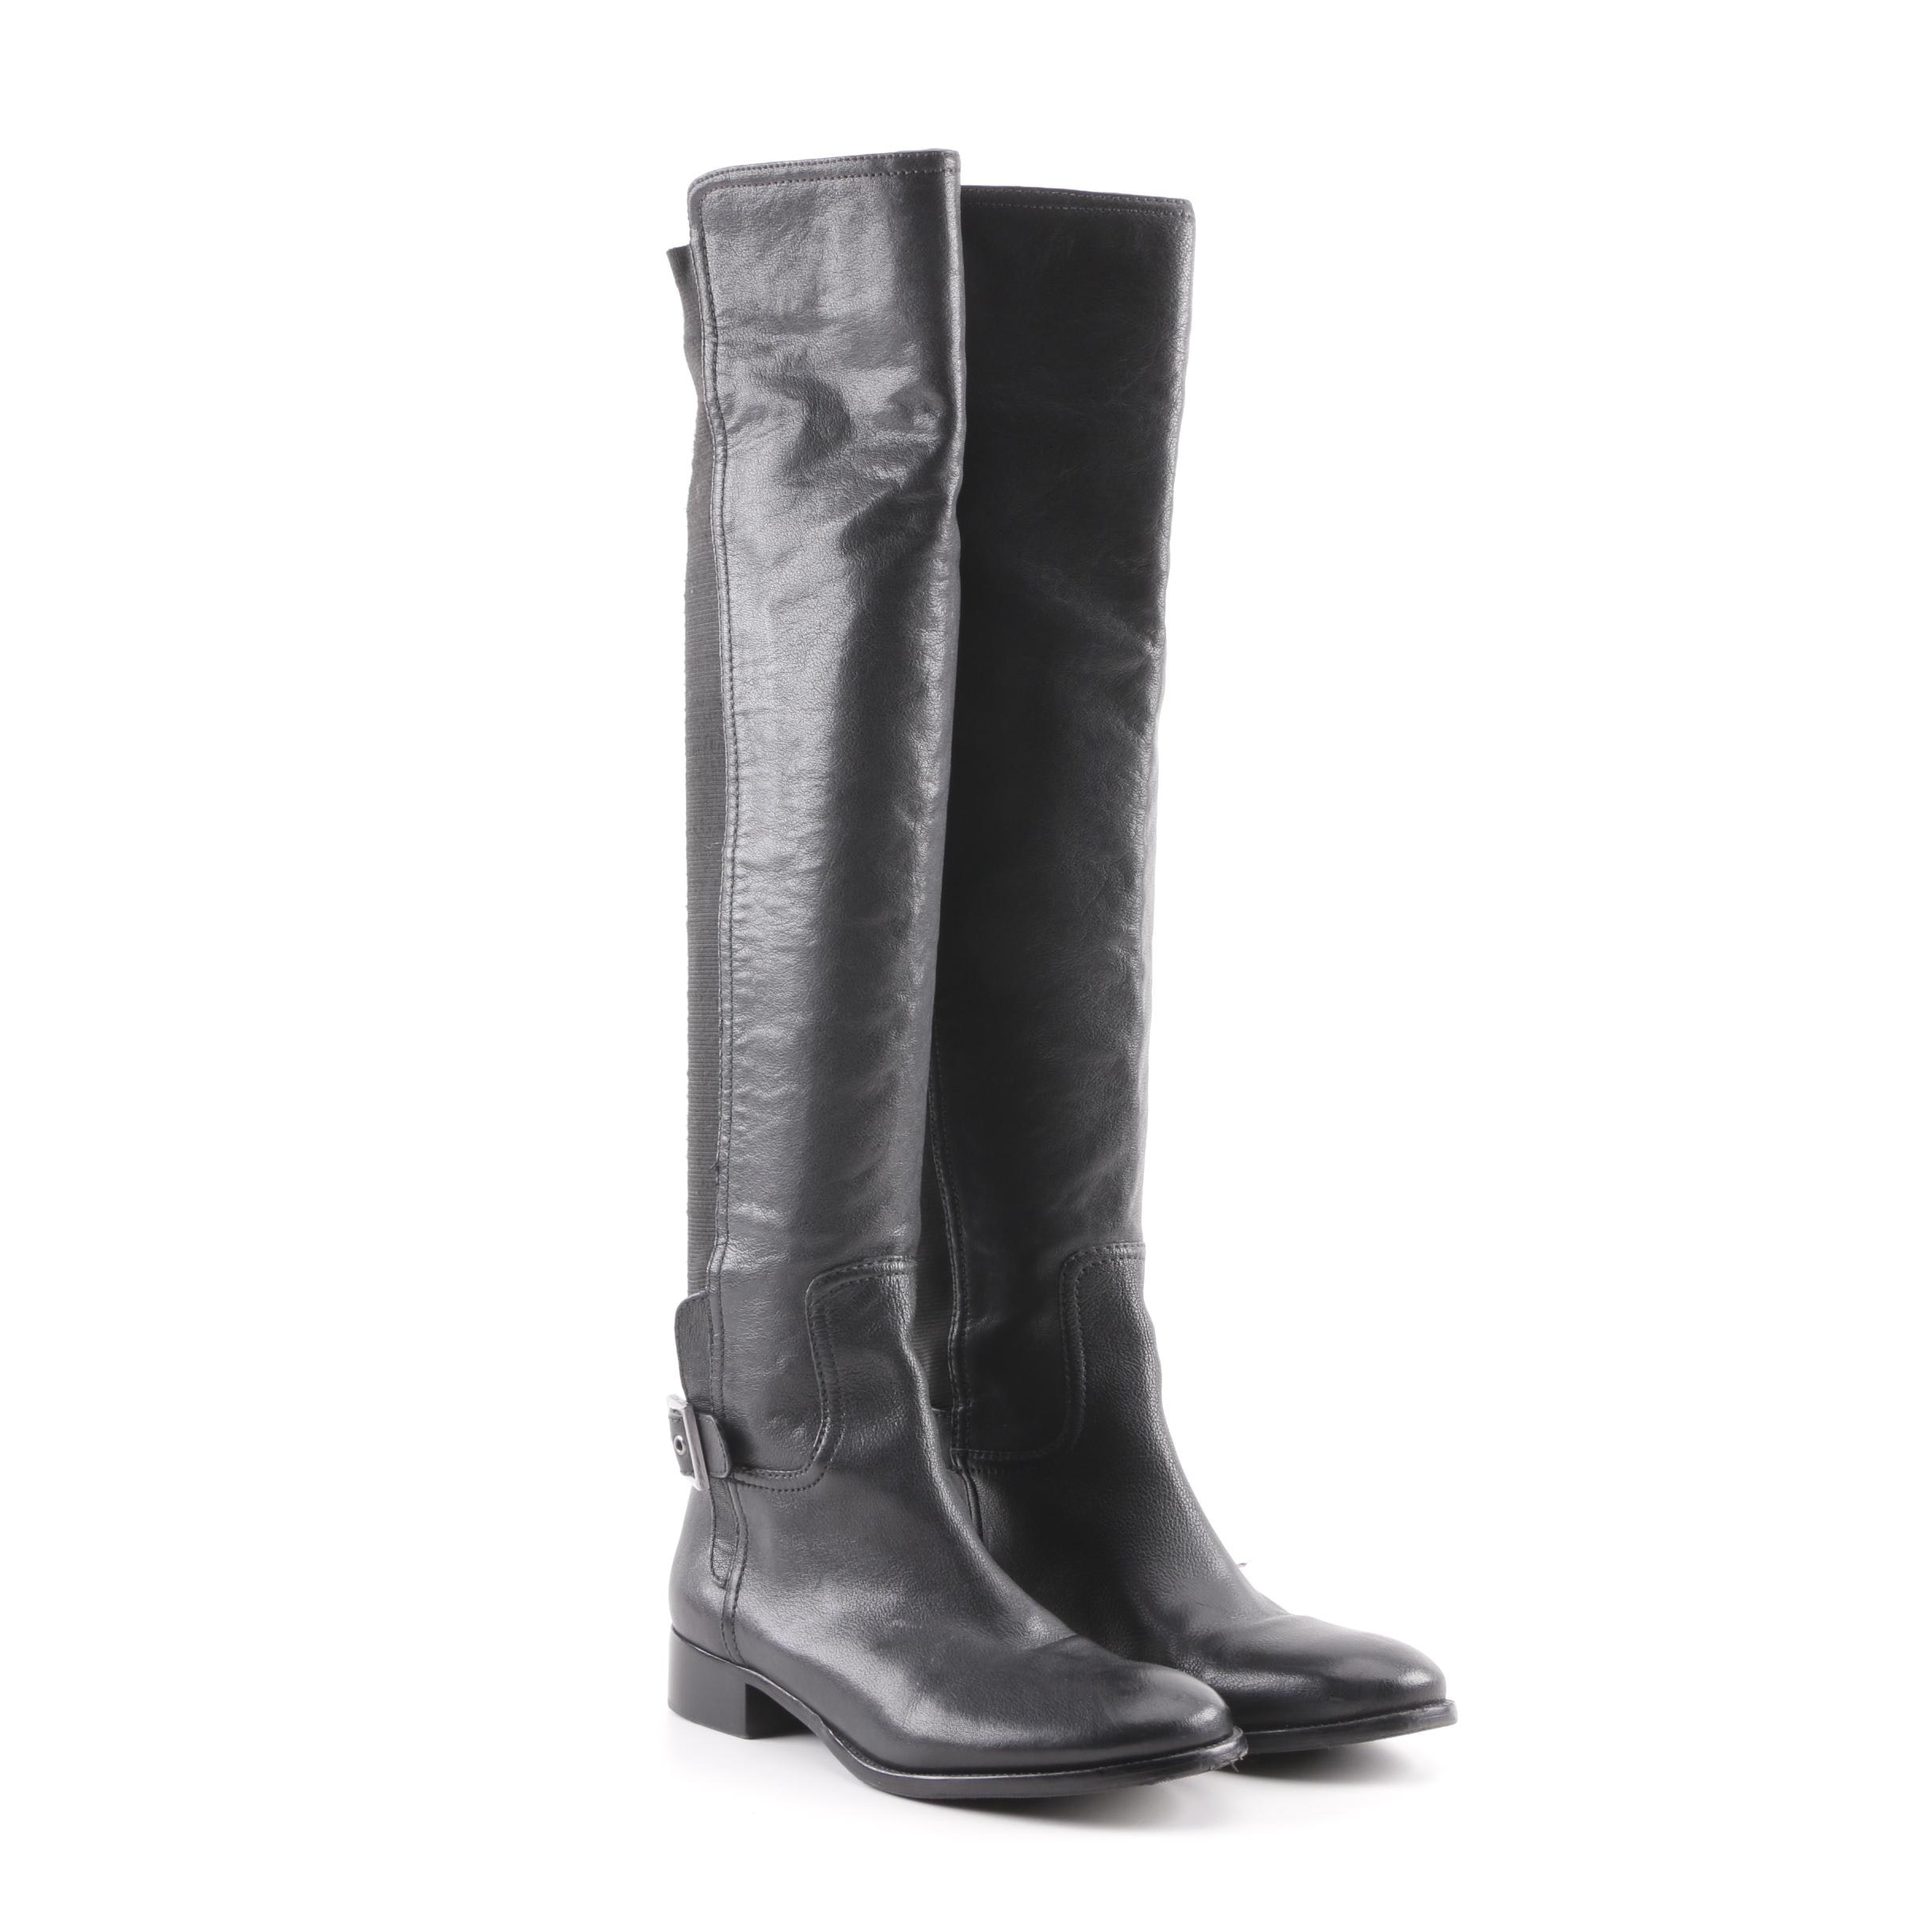 Tory Burch Black Leather Over-the-Knee Boots